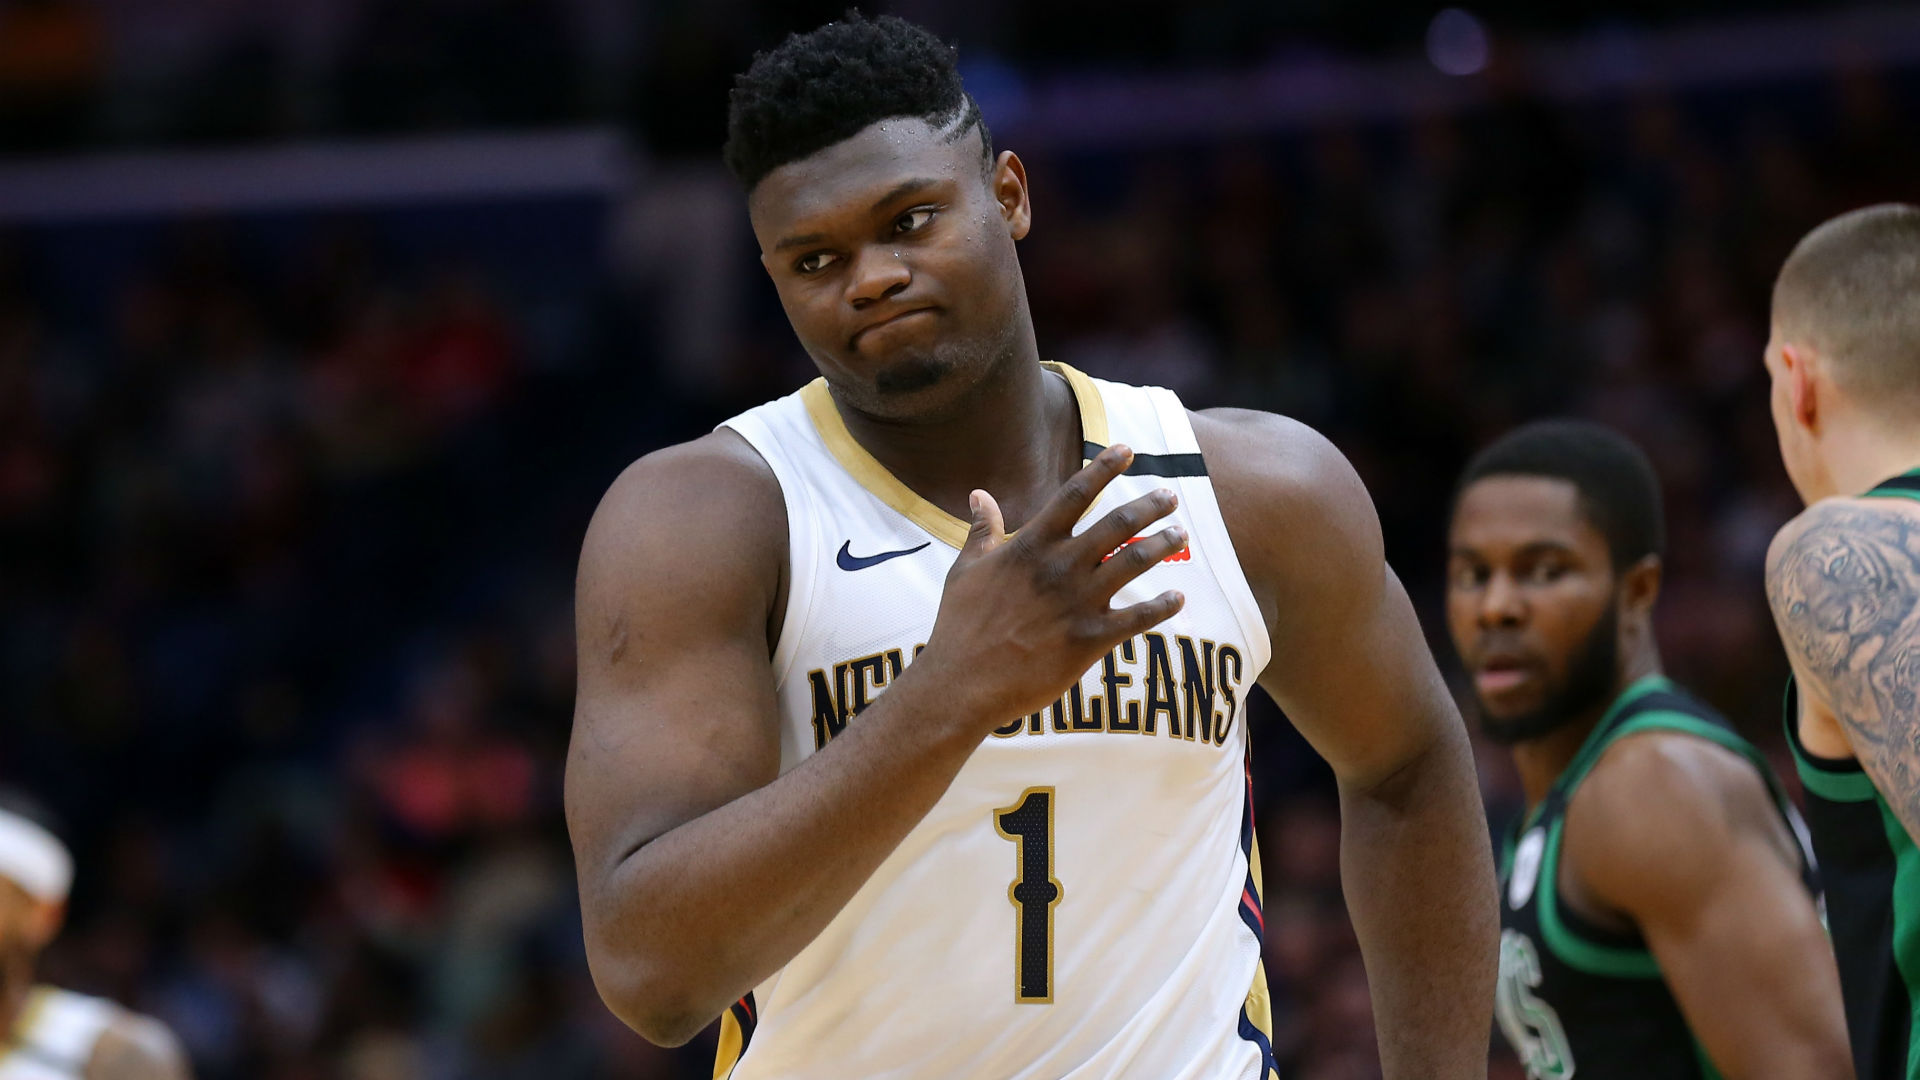 Zion Williamson wants to represent USA at future Olympics